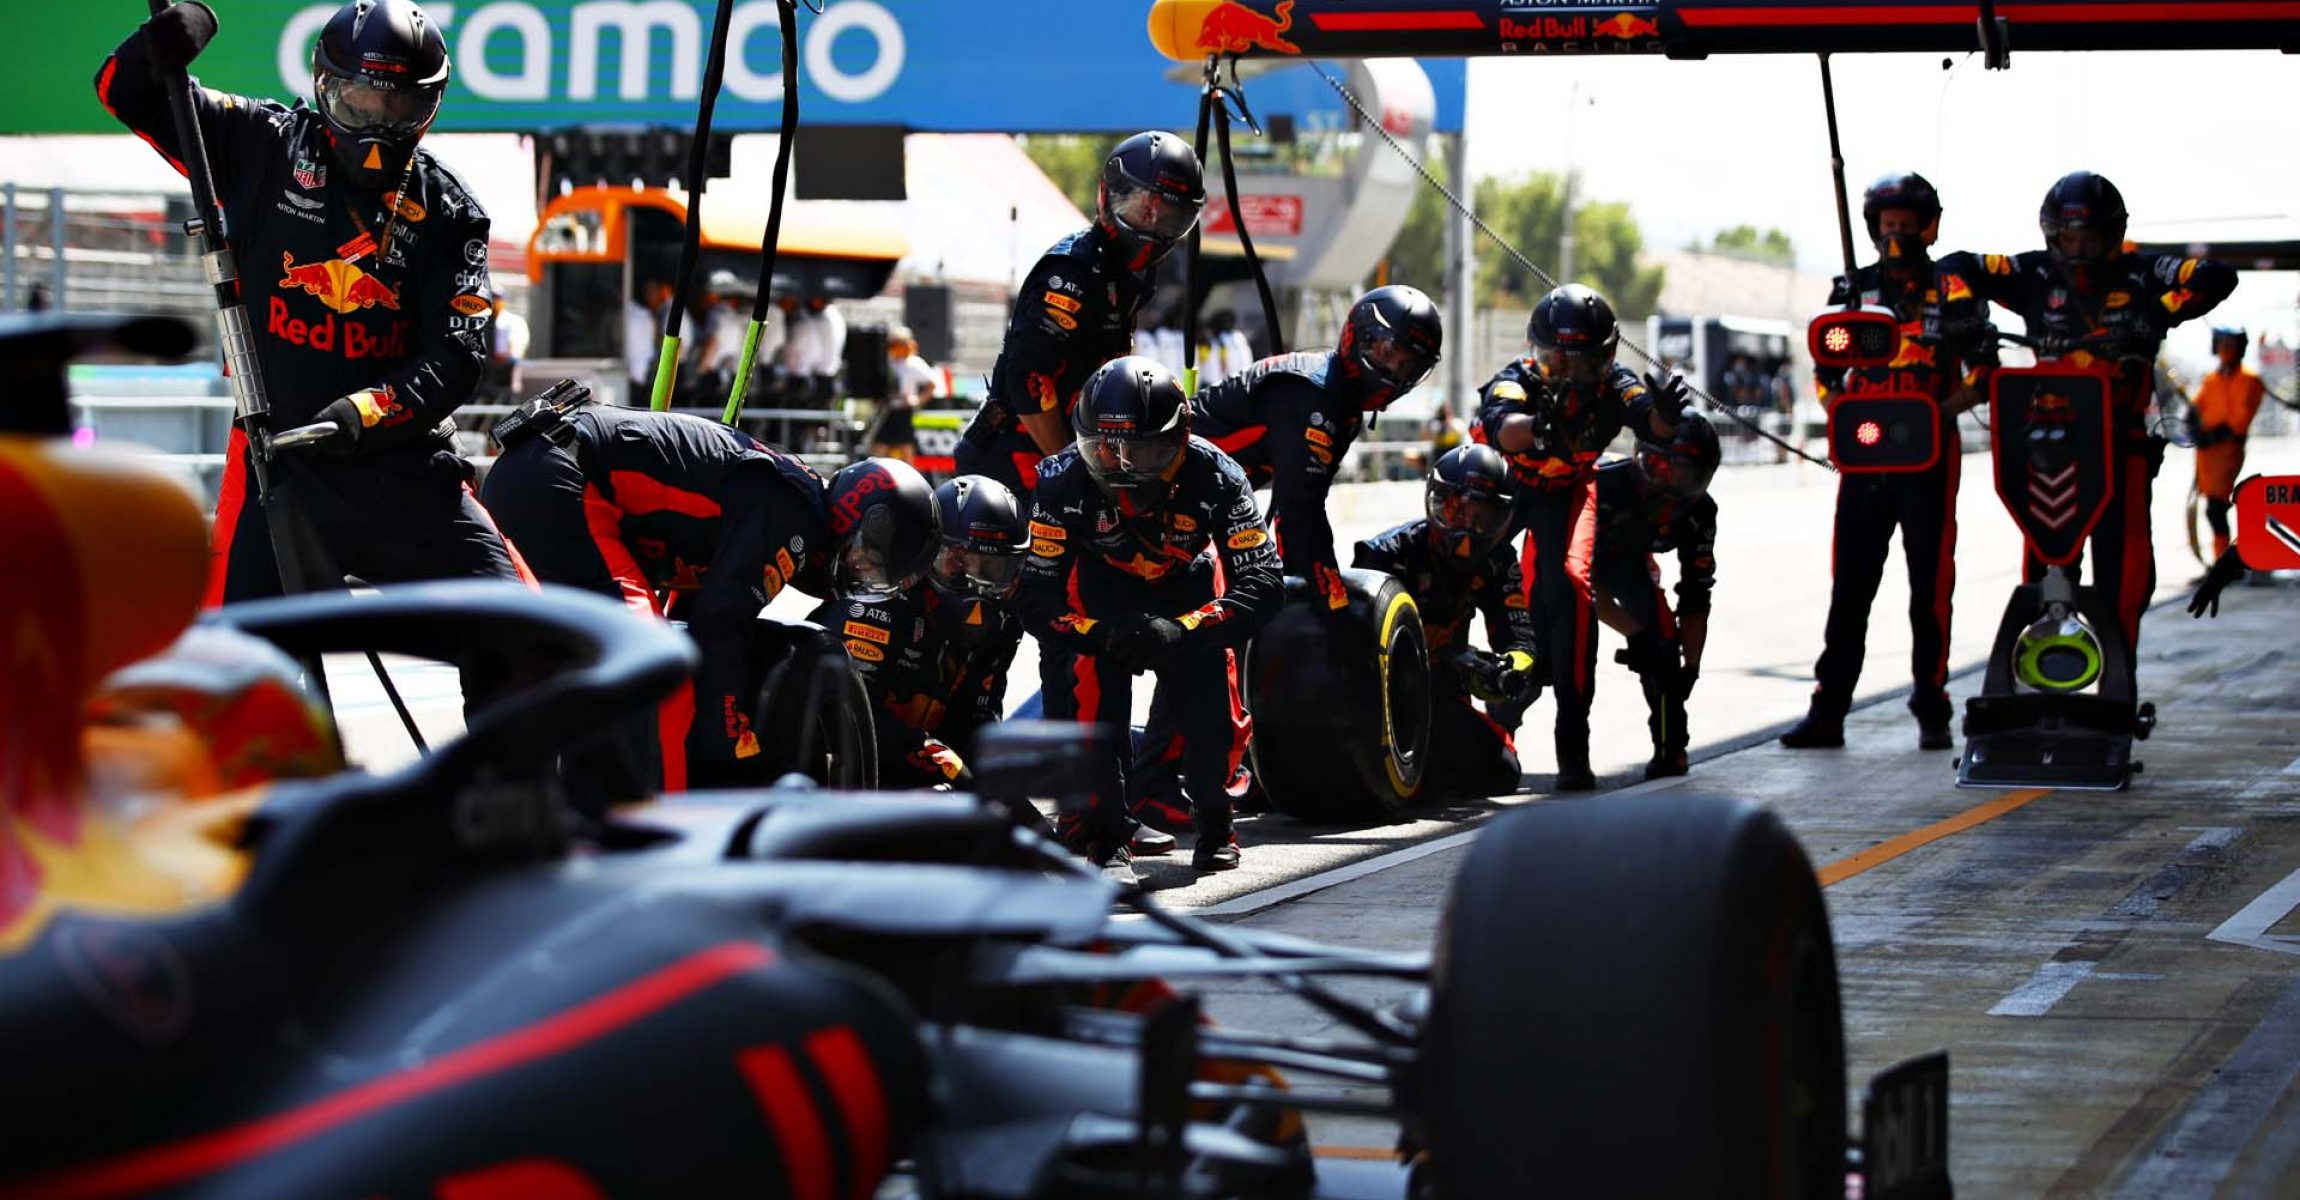 BARCELONA, SPAIN - AUGUST 16: Max Verstappen of the Netherlands driving the (33) Aston Martin Red Bull Racing RB16 makes a pitstop during the F1 Grand Prix of Spain at Circuit de Barcelona-Catalunya on August 16, 2020 in Barcelona, Spain. (Photo by Mark Thompson/Getty Images)